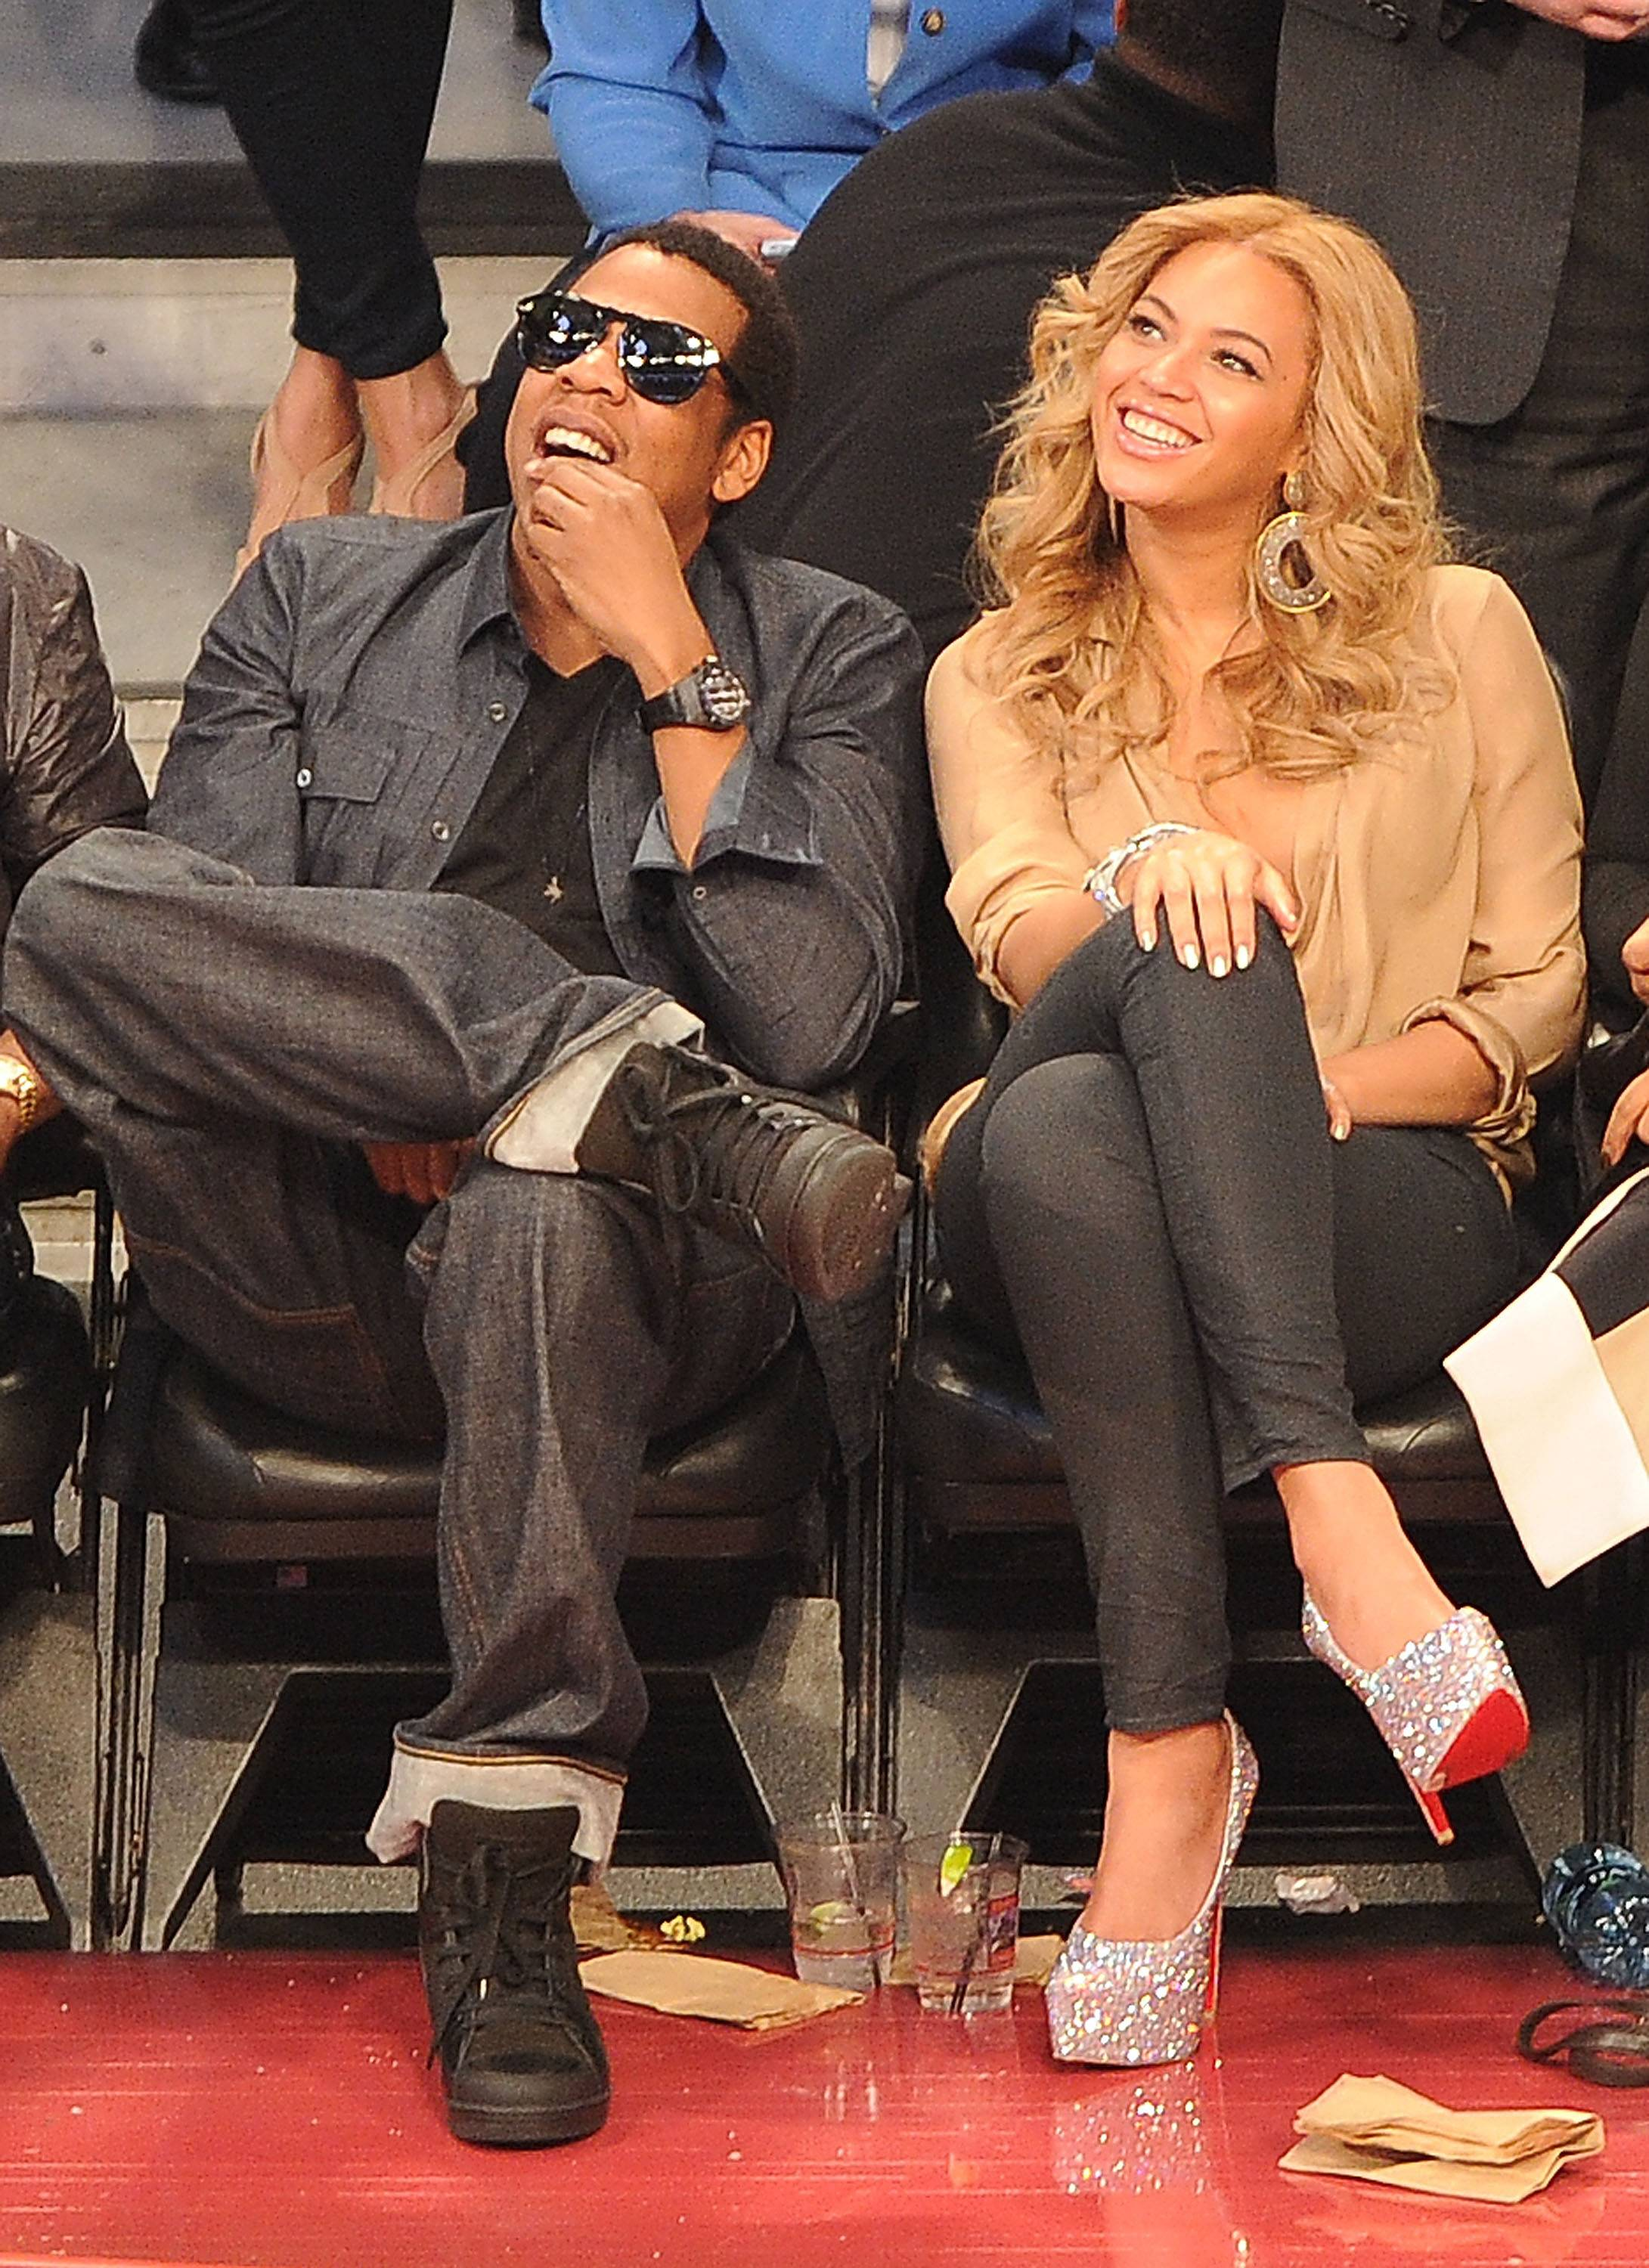 0311-shows-lets-stay-opposites-jay-z-beyonce-1.jpg